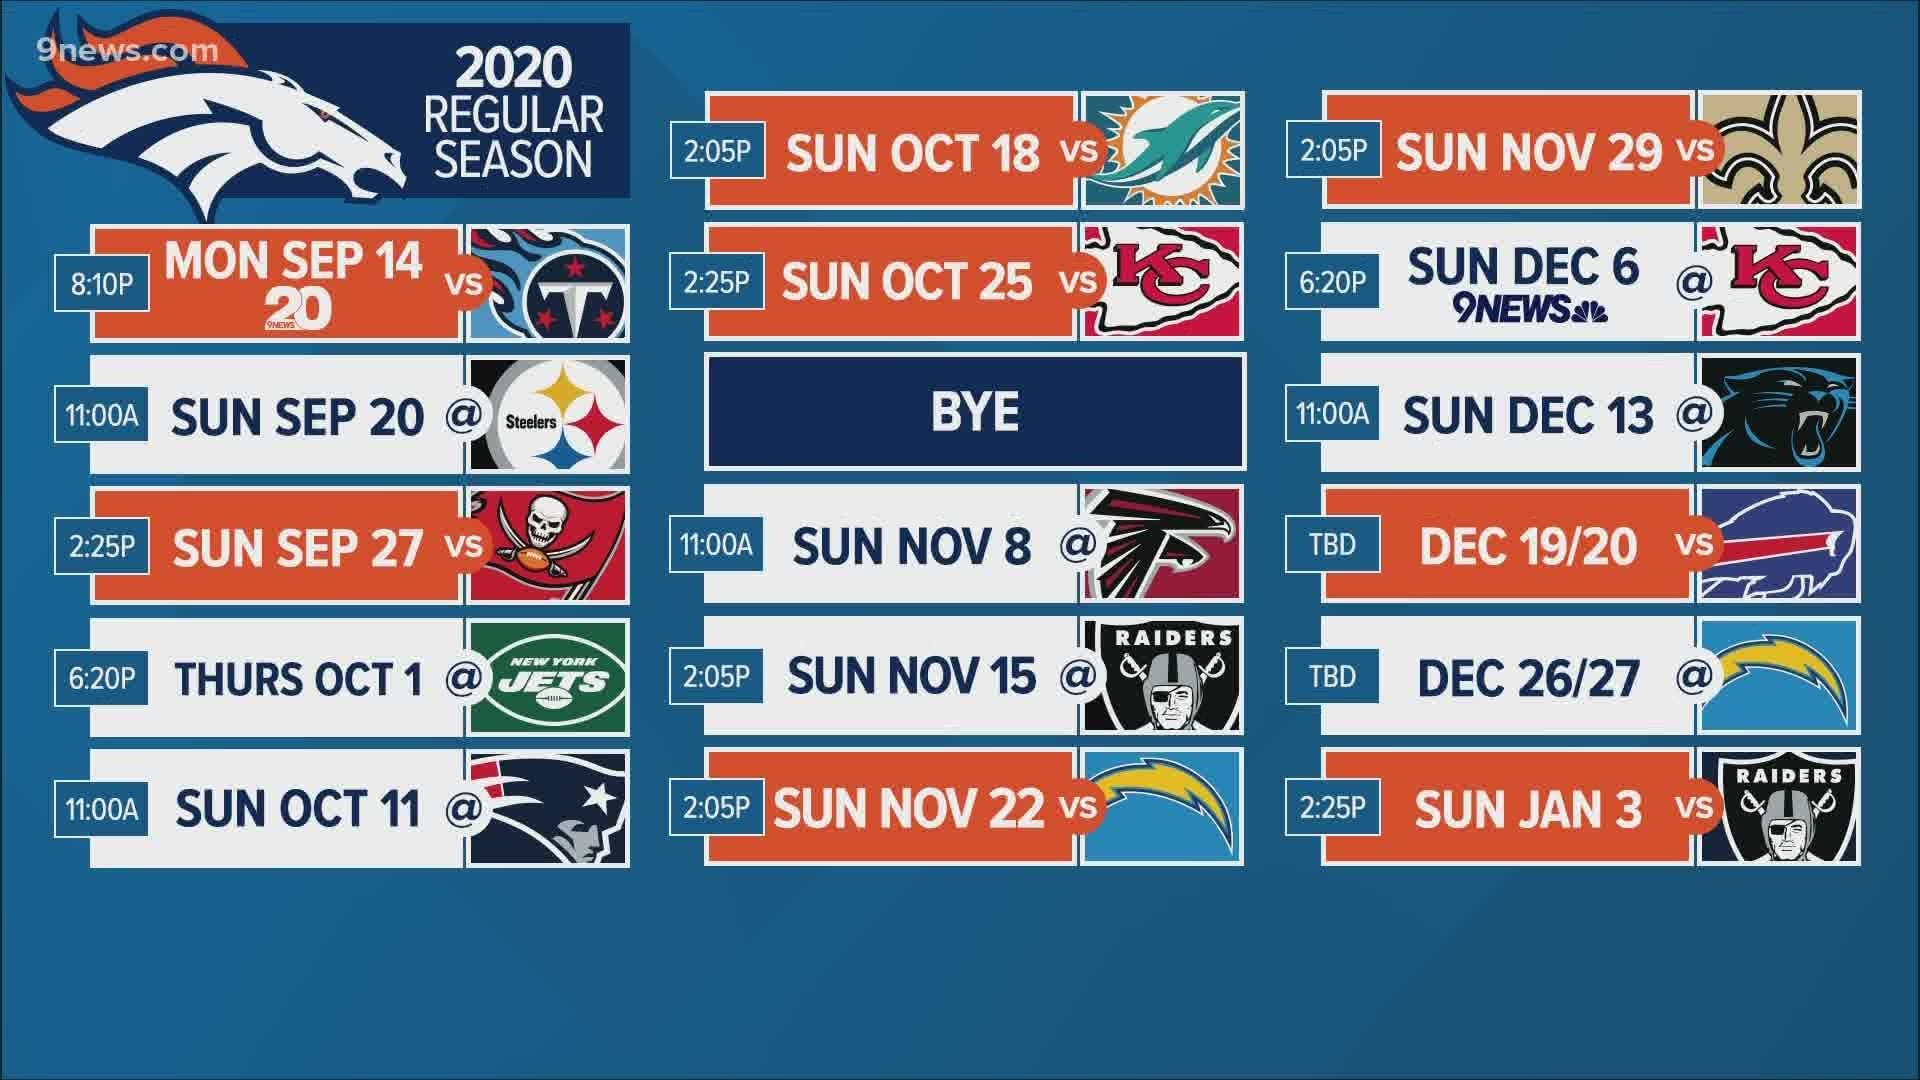 Nfl 2021 Printable Schedules | Calendar Printables Free Blank intended for Printable 2021 Full Nfl Schedule